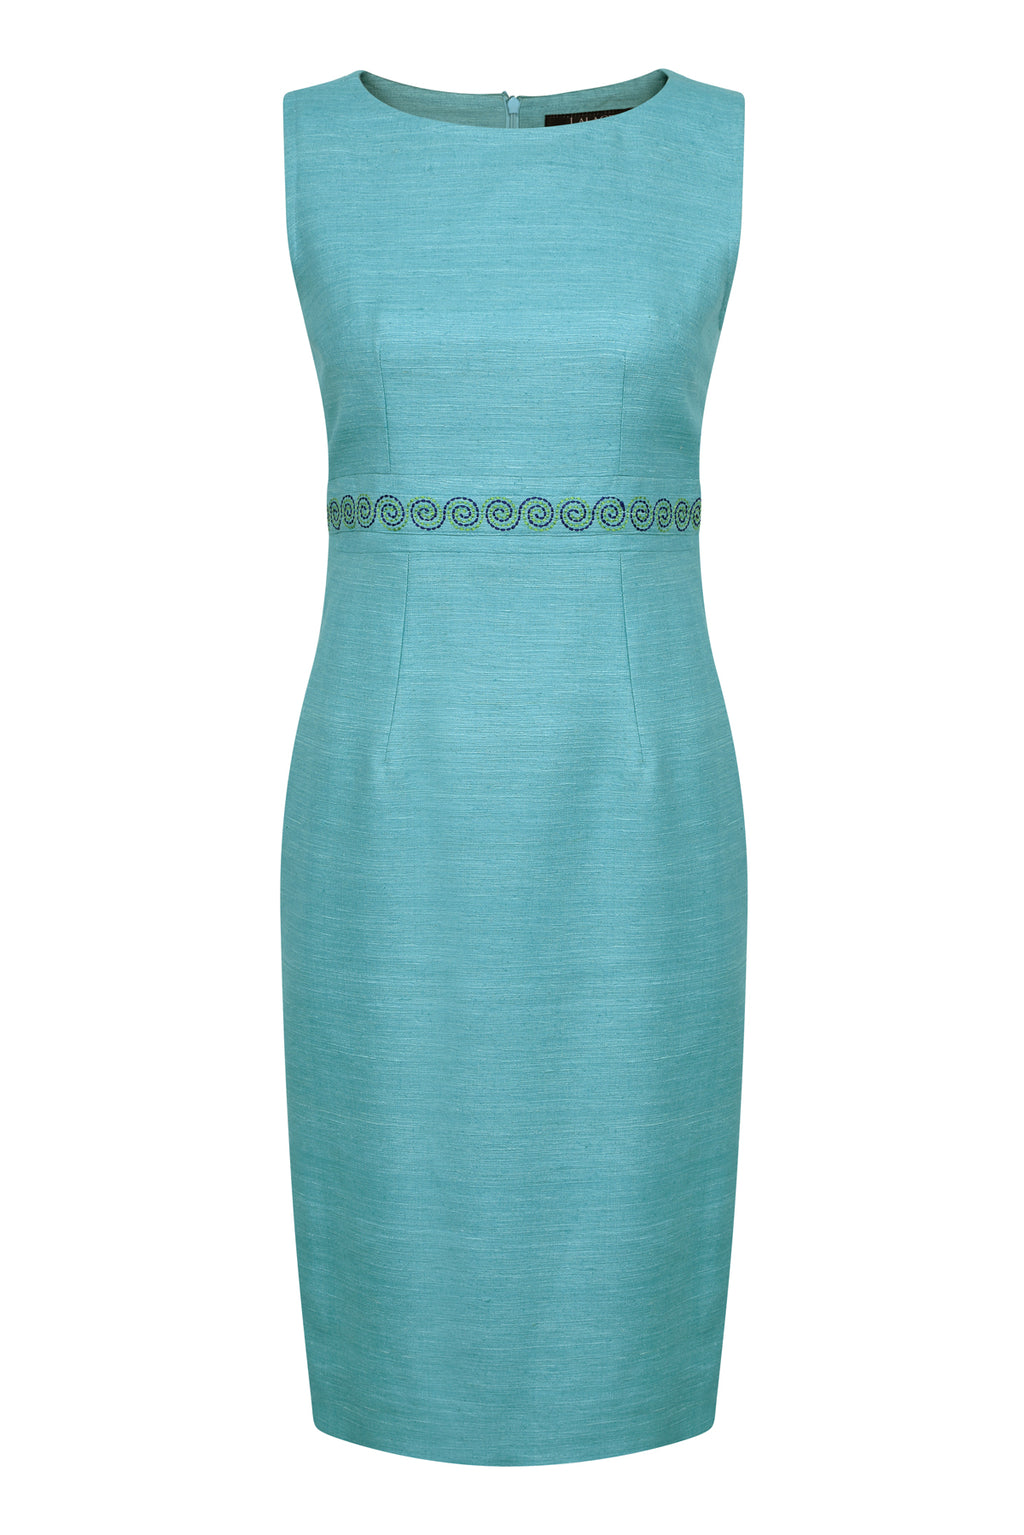 Turquoise silk dress